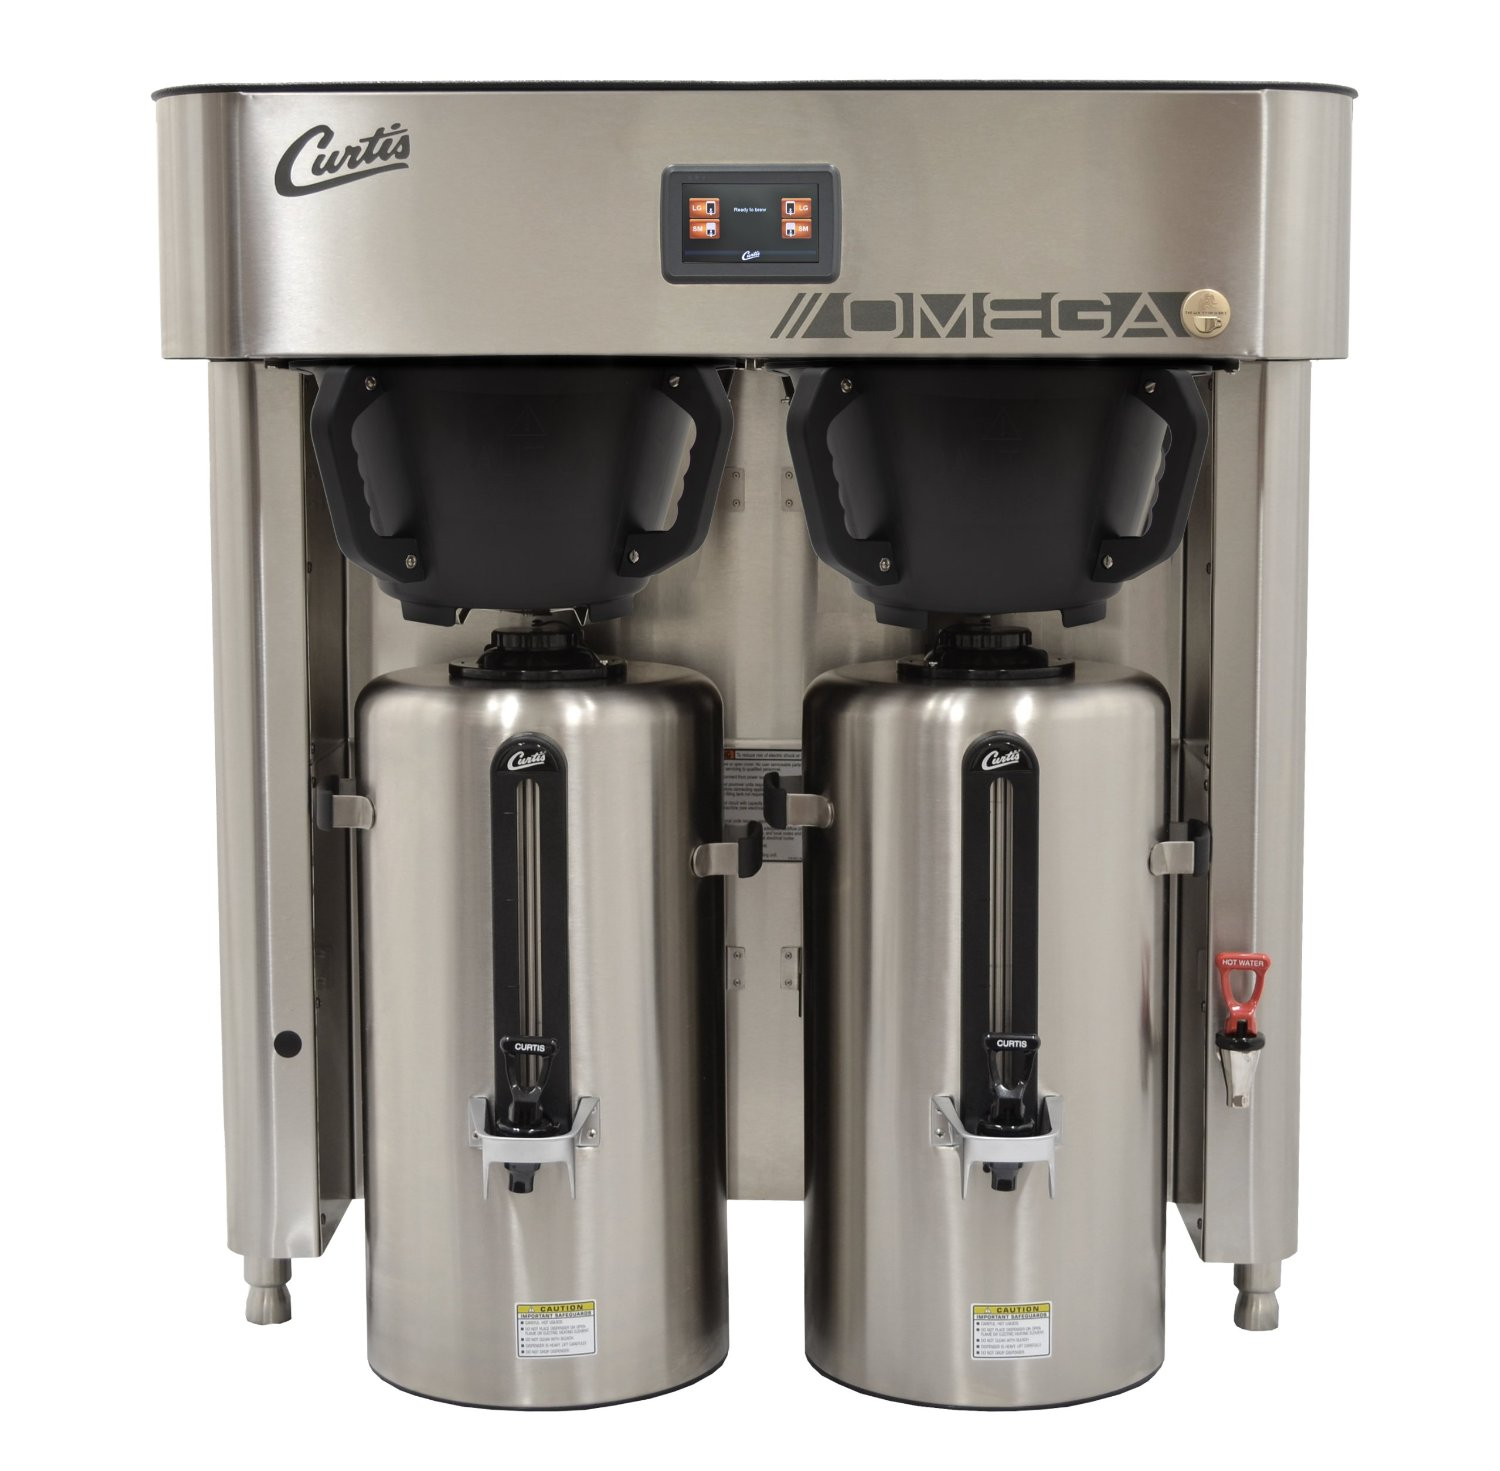 Wilbur Curtis G4 Omega Brewer 3.0 Gallon Twin Coffee Brewer, Standard 3Ph From Factory - Commercial High-Volume Coffee Brewer - OMGT (Each)